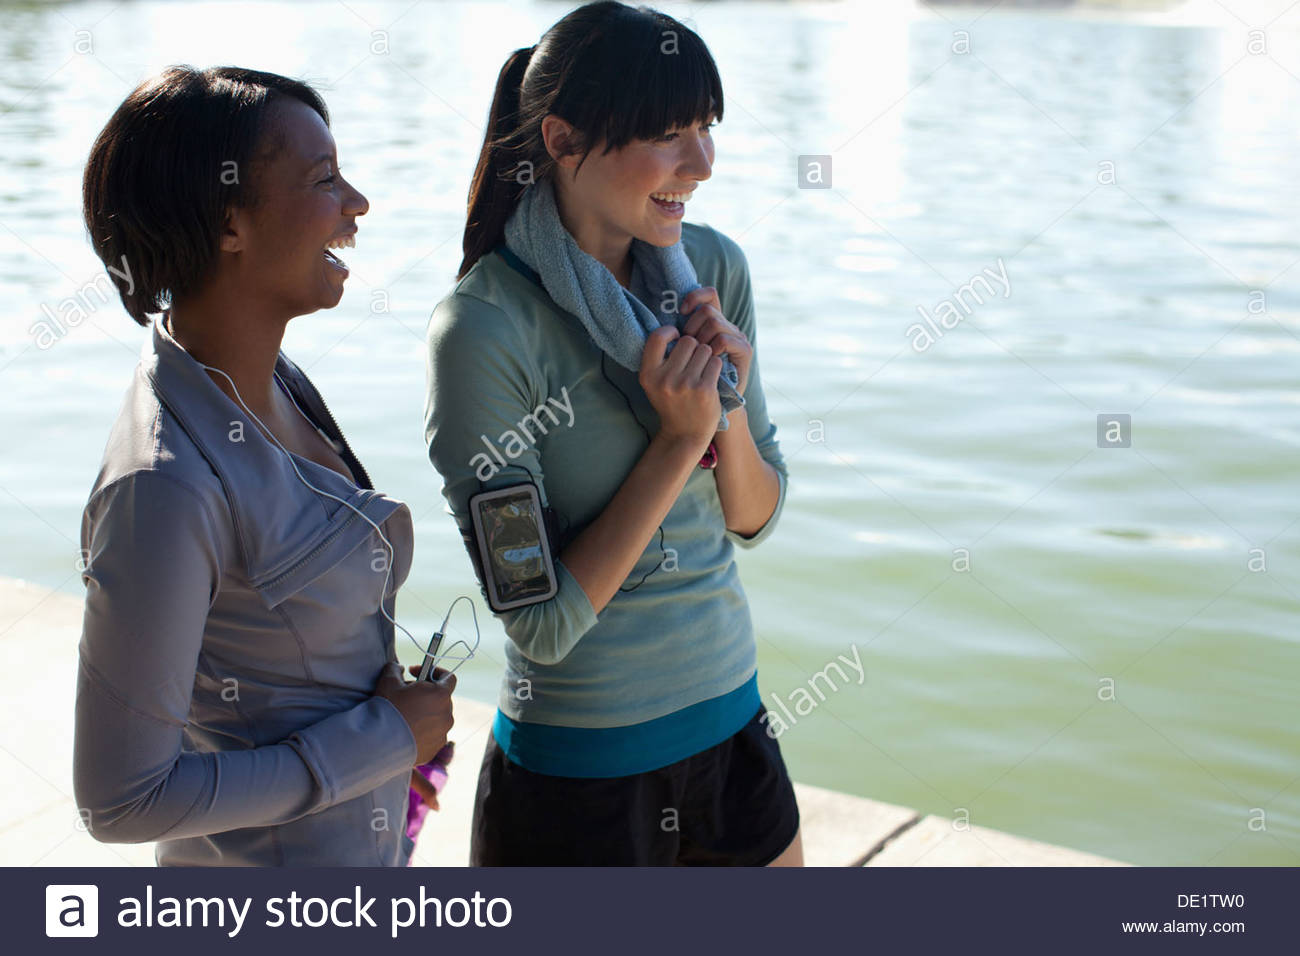 Women walking together by lake in park - Stock Image